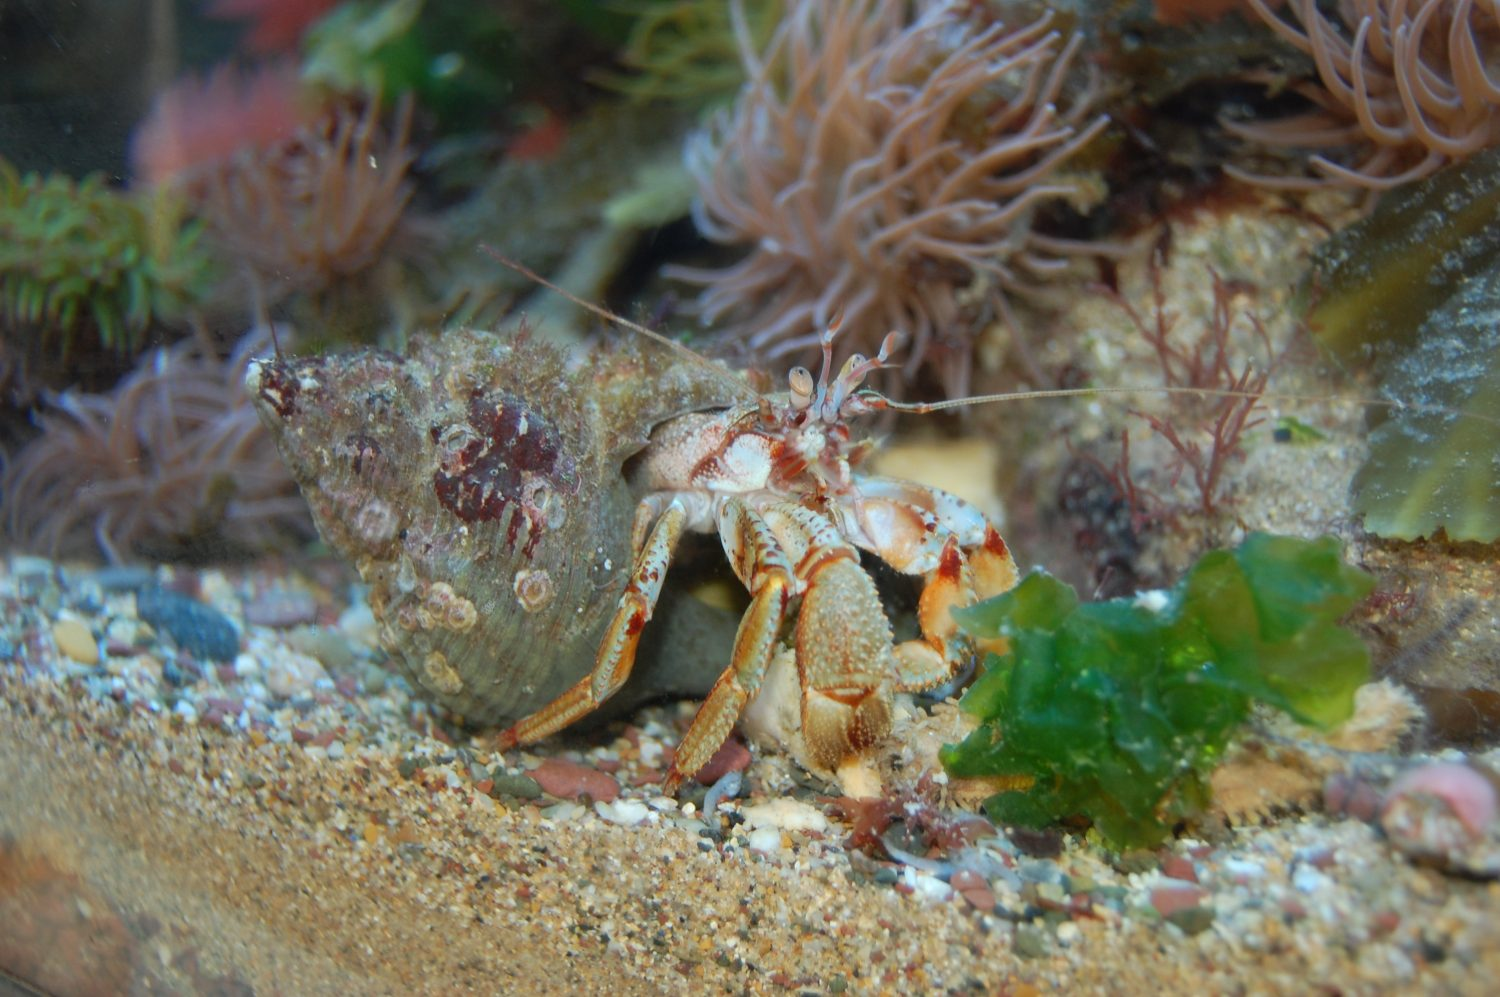 Hermit crab in Silent World rockpool tank, Pembrokeshire Coast National Park, Wales, UK